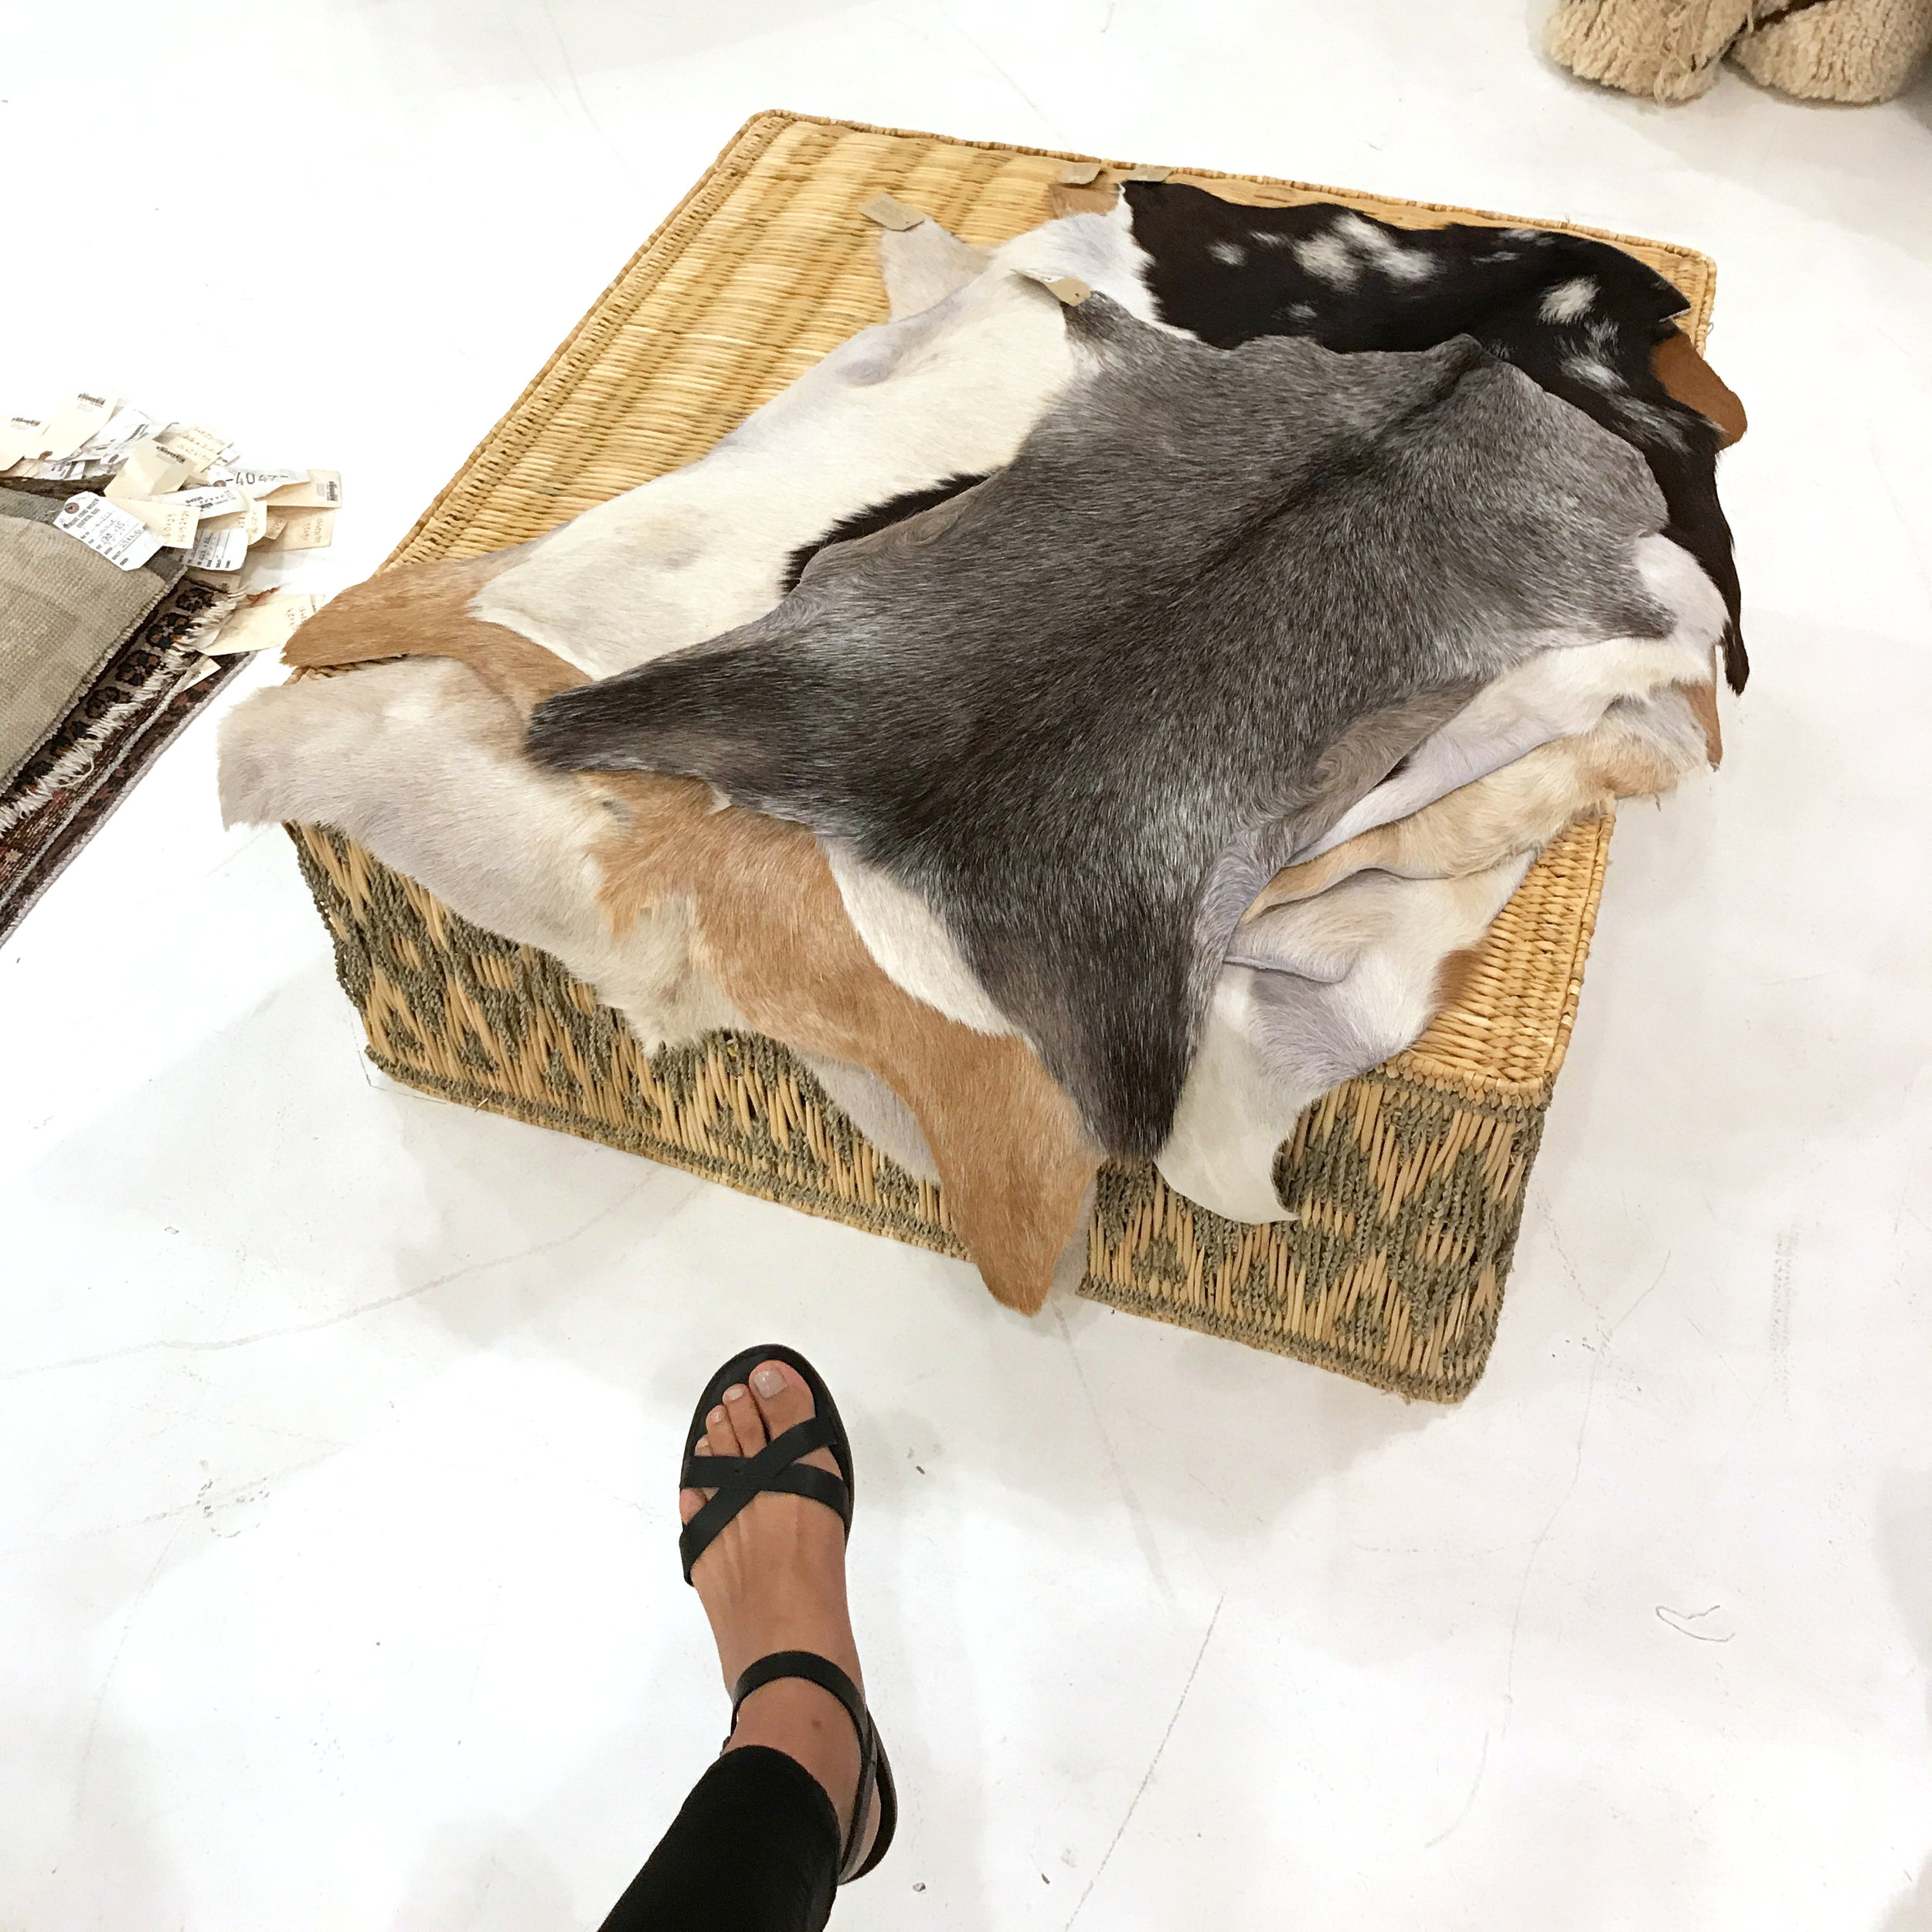 Goatskin Hides - $95 |  GREAT FOR:  Kids' rooms or as a runner in a narrow hallway  I added my foot for size reference. These goat hides are adorably mini!